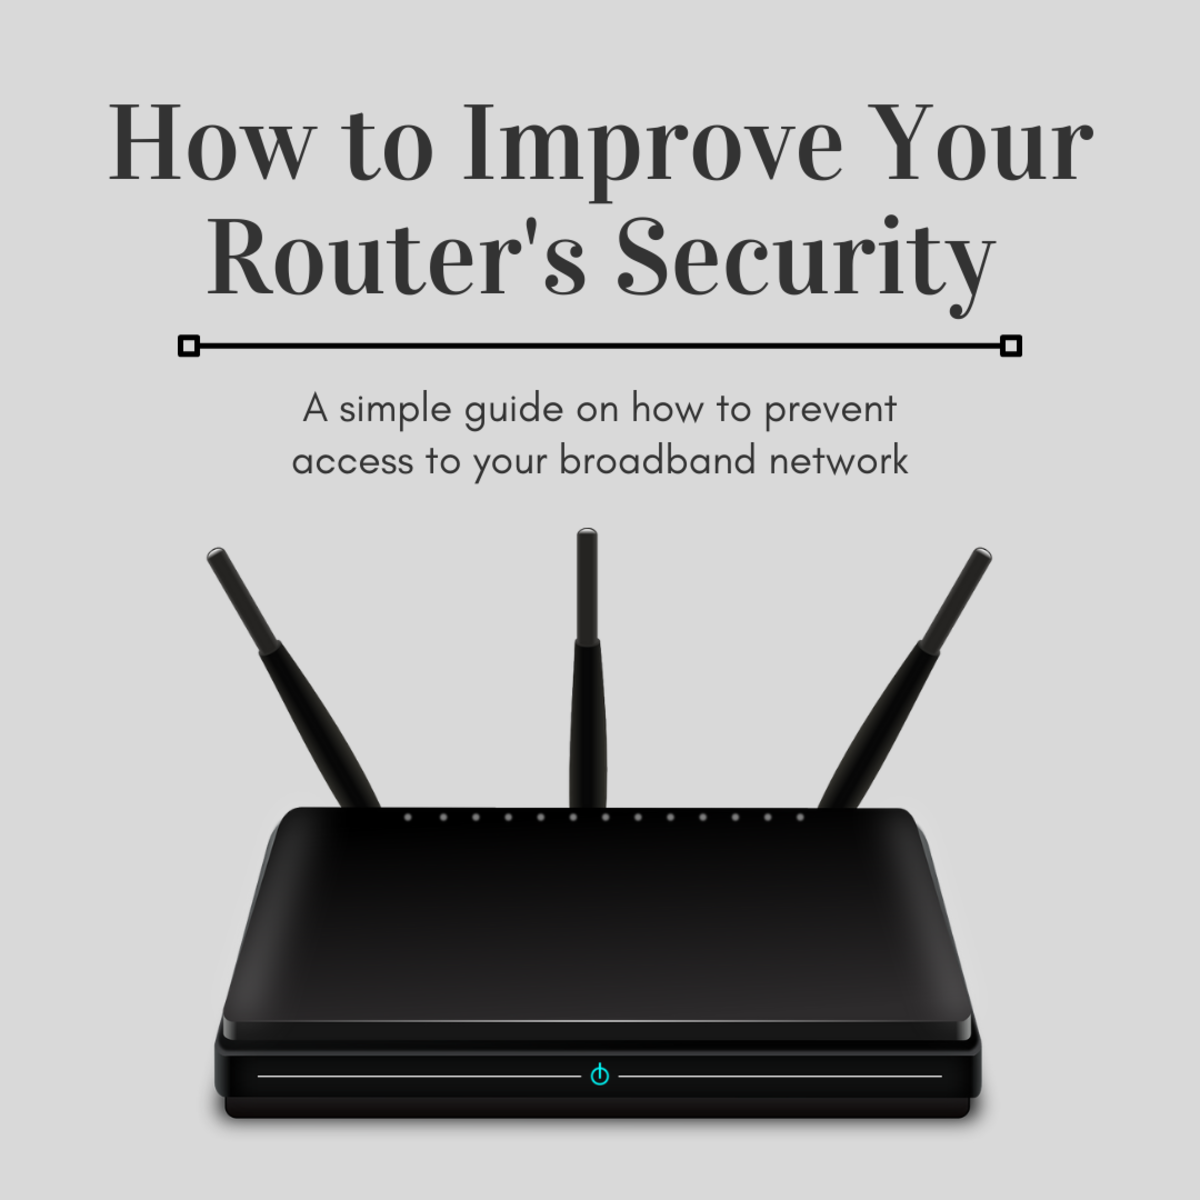 How to Configure Your Wireless Router for Enhanced Security